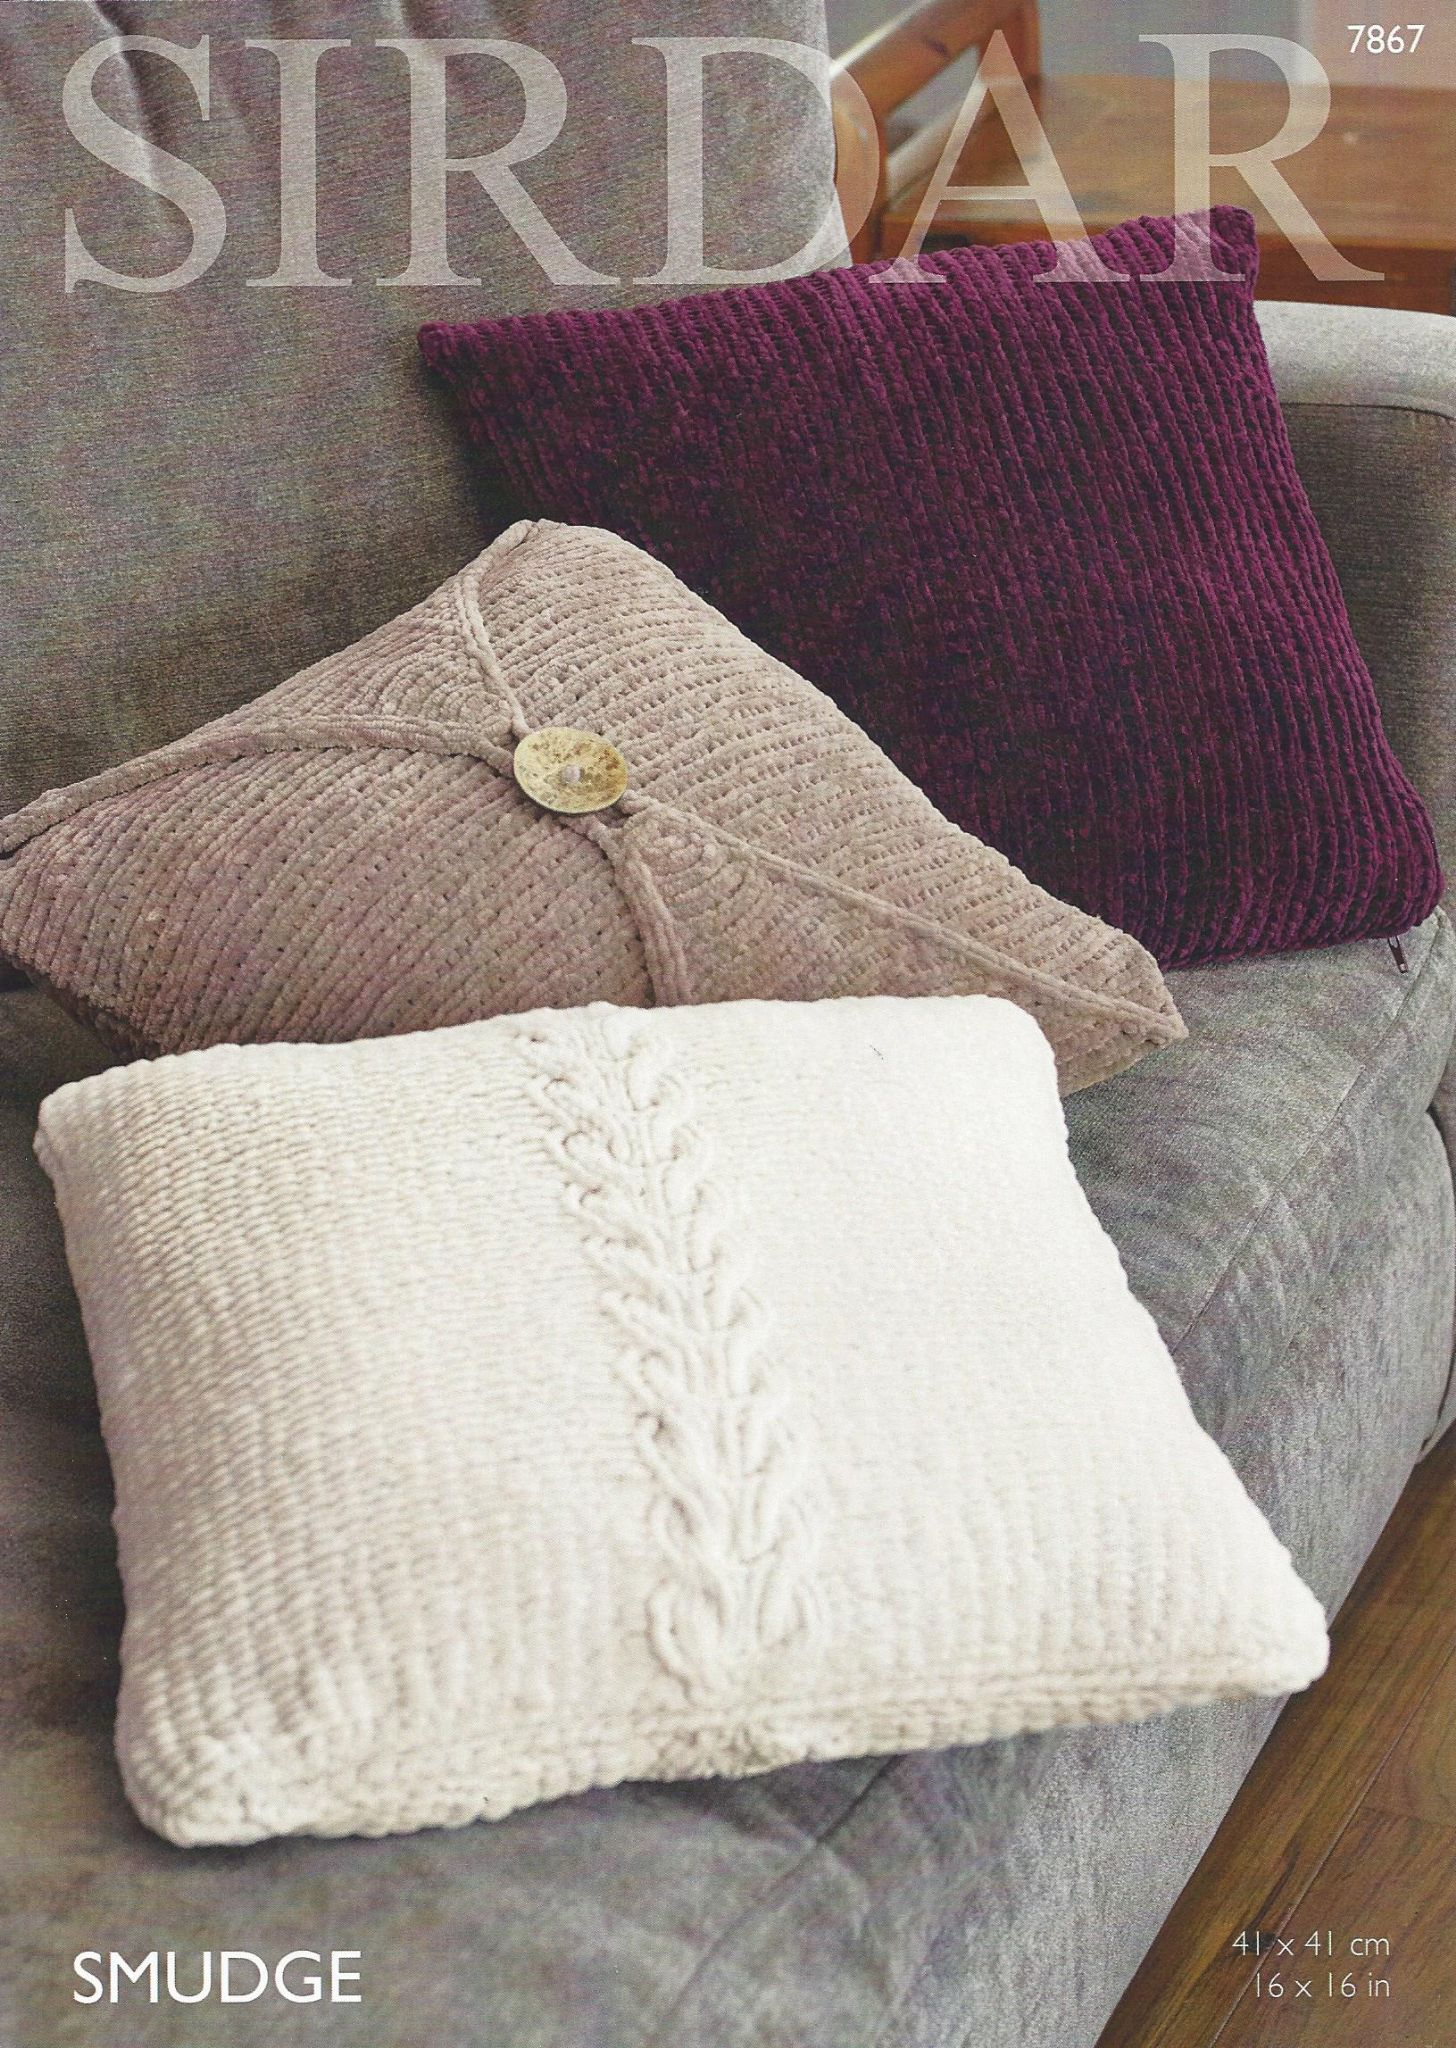 Sirdar Smudge - 7867 Cushion Covers Knitting Pattern